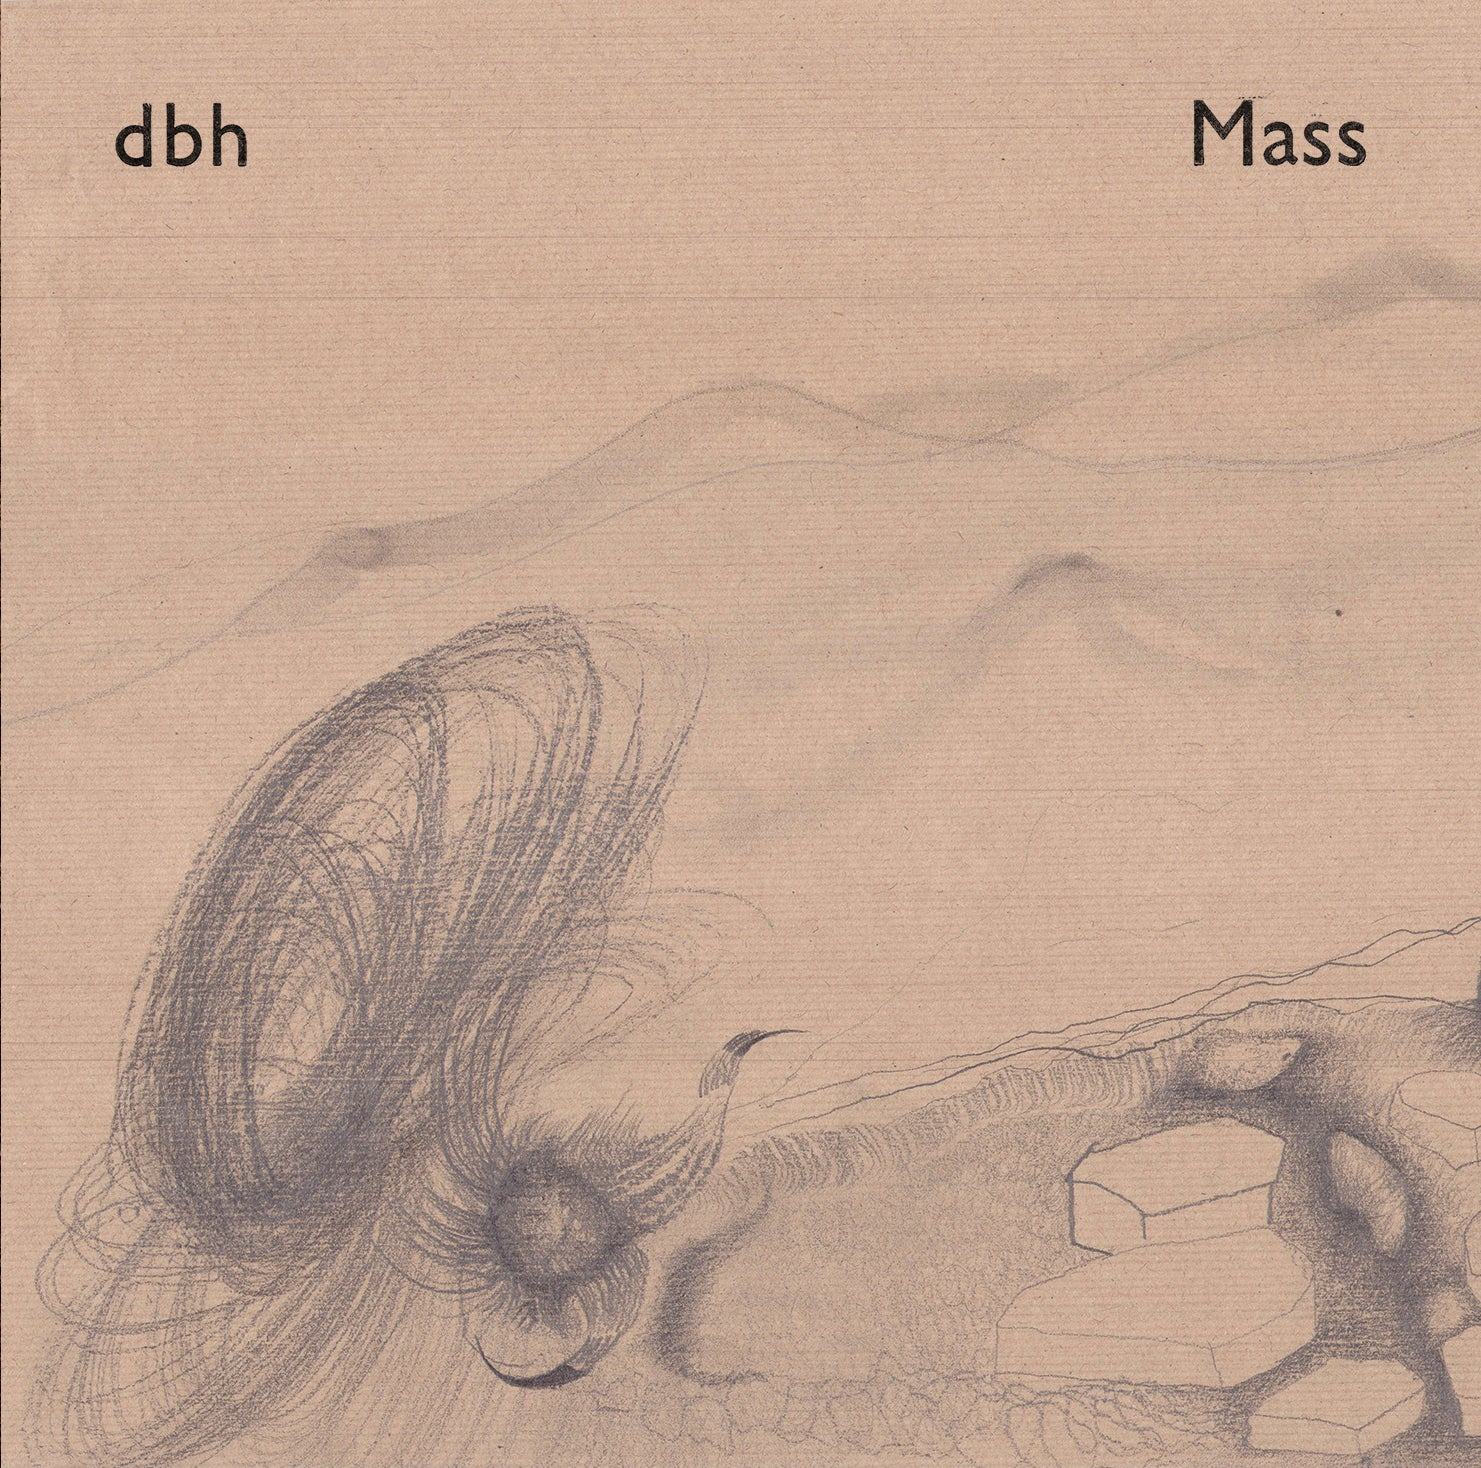 <small>005</small><br>dbh<br><i>Mass</i> (CD)